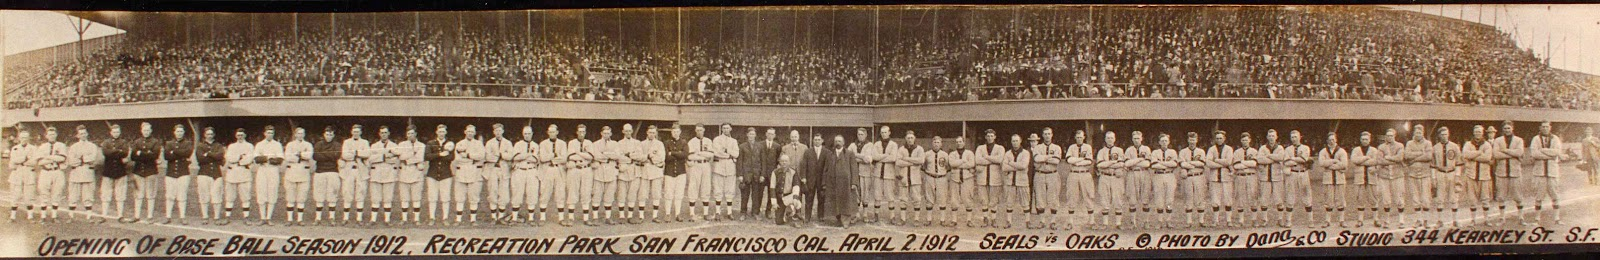 Opening of Base Ball Season 1912, Recreation Park, San Francisco, Cal. April 2 1912, Seals vs Oaks, Dick Dobbins Collection on the Pacific Coast League, courtesy, California Historical Society, MS 4031.020